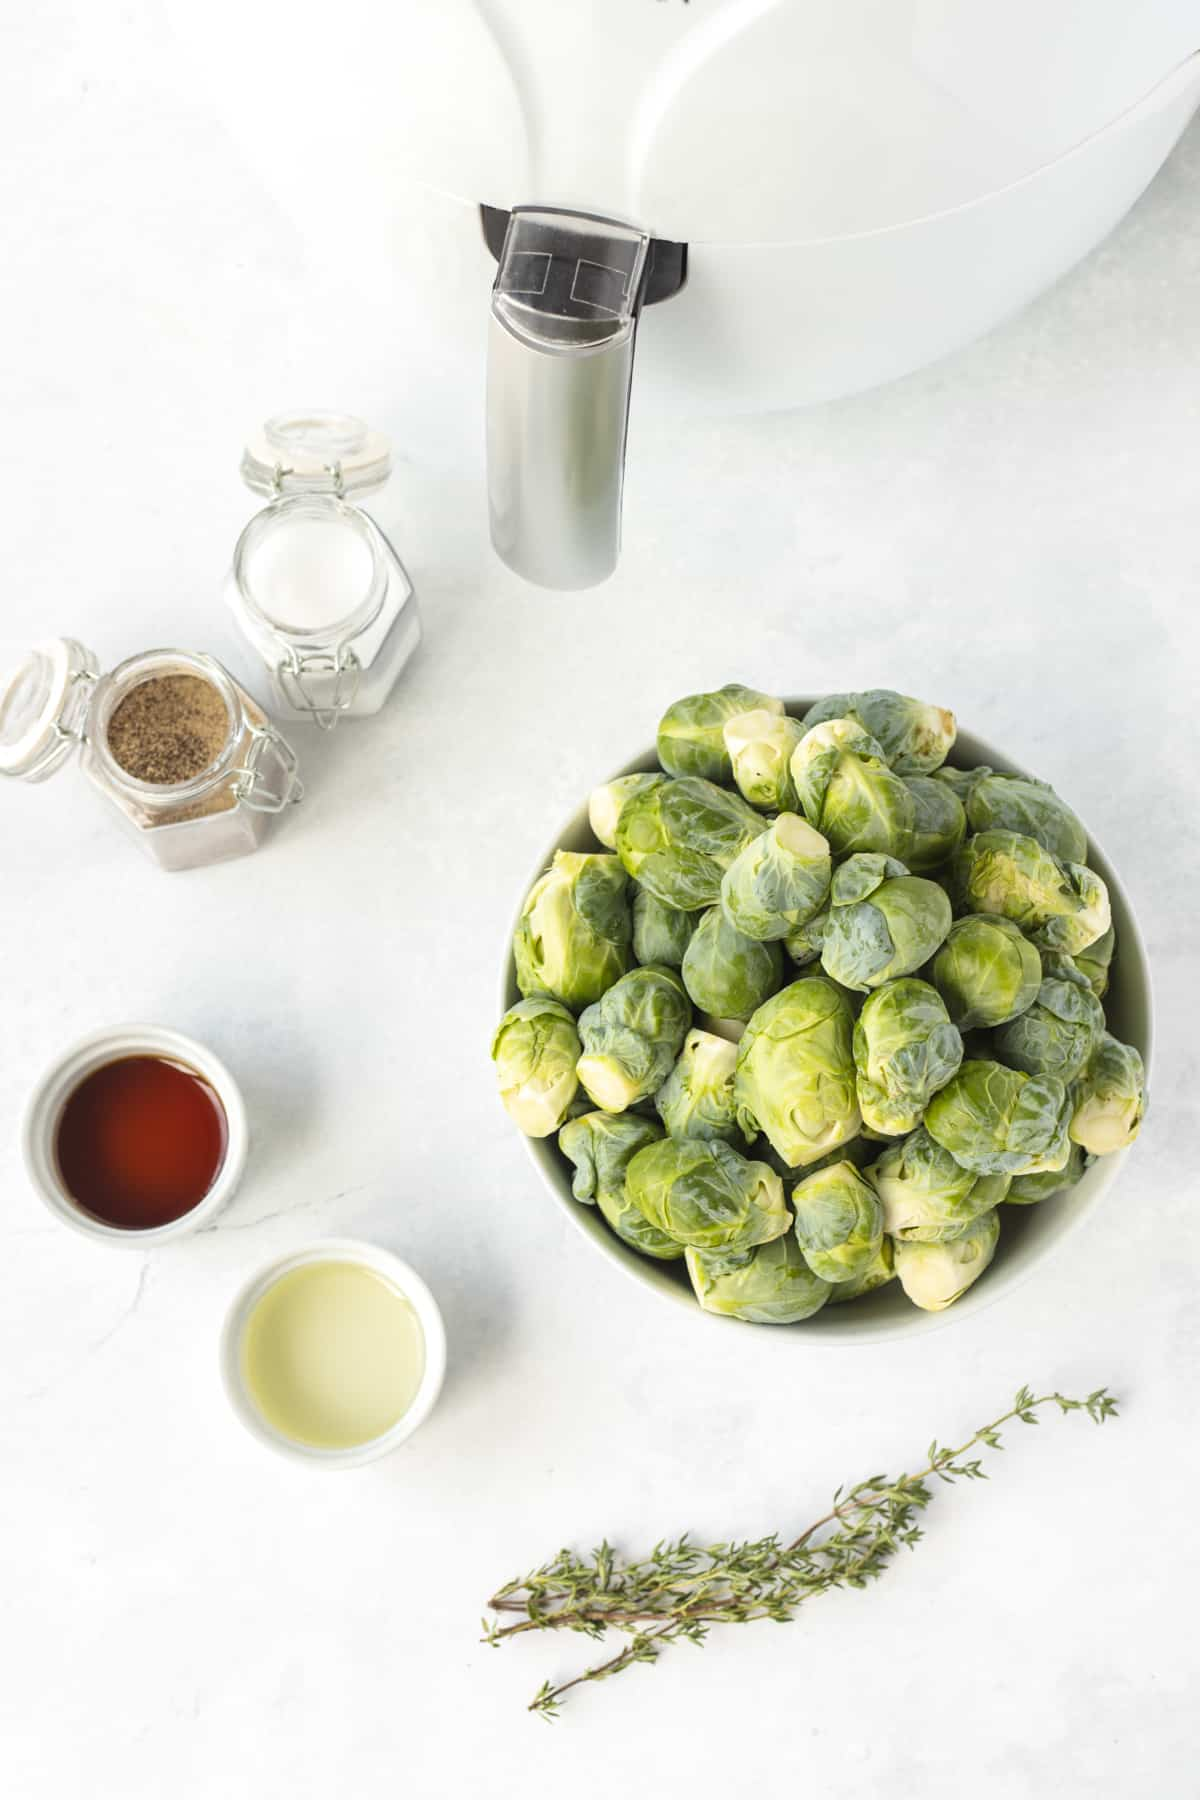 ingredients to make air fryer brussels sprouts